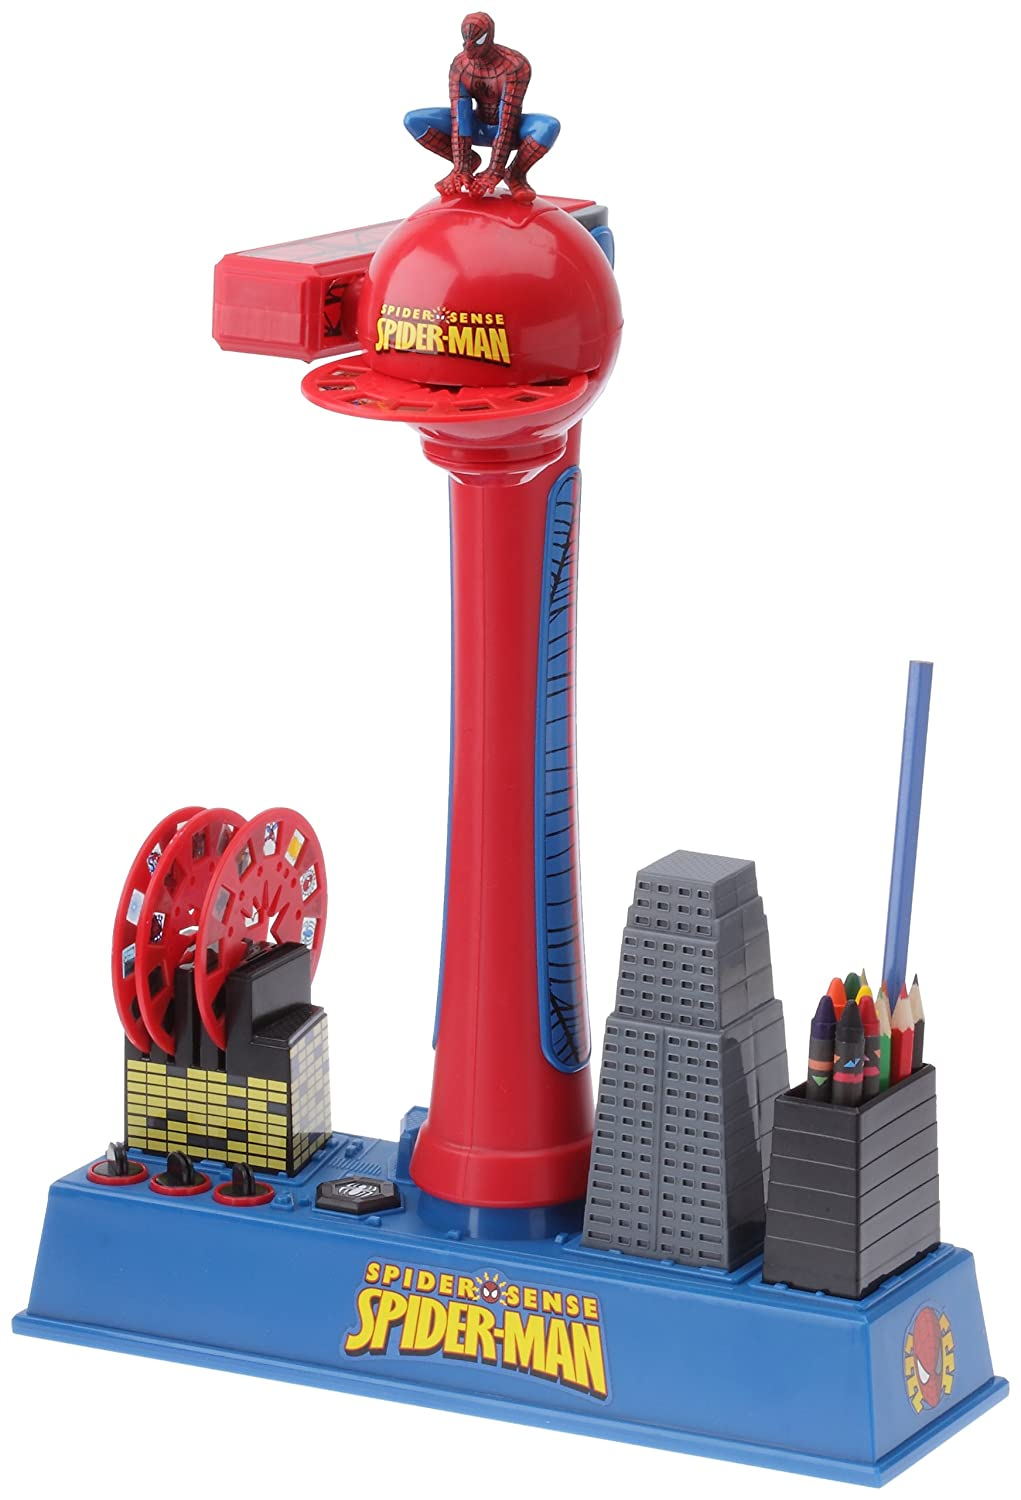 IMC Toys 704089 - Spiderman Proyector De Dibujos: Amazon.es ...